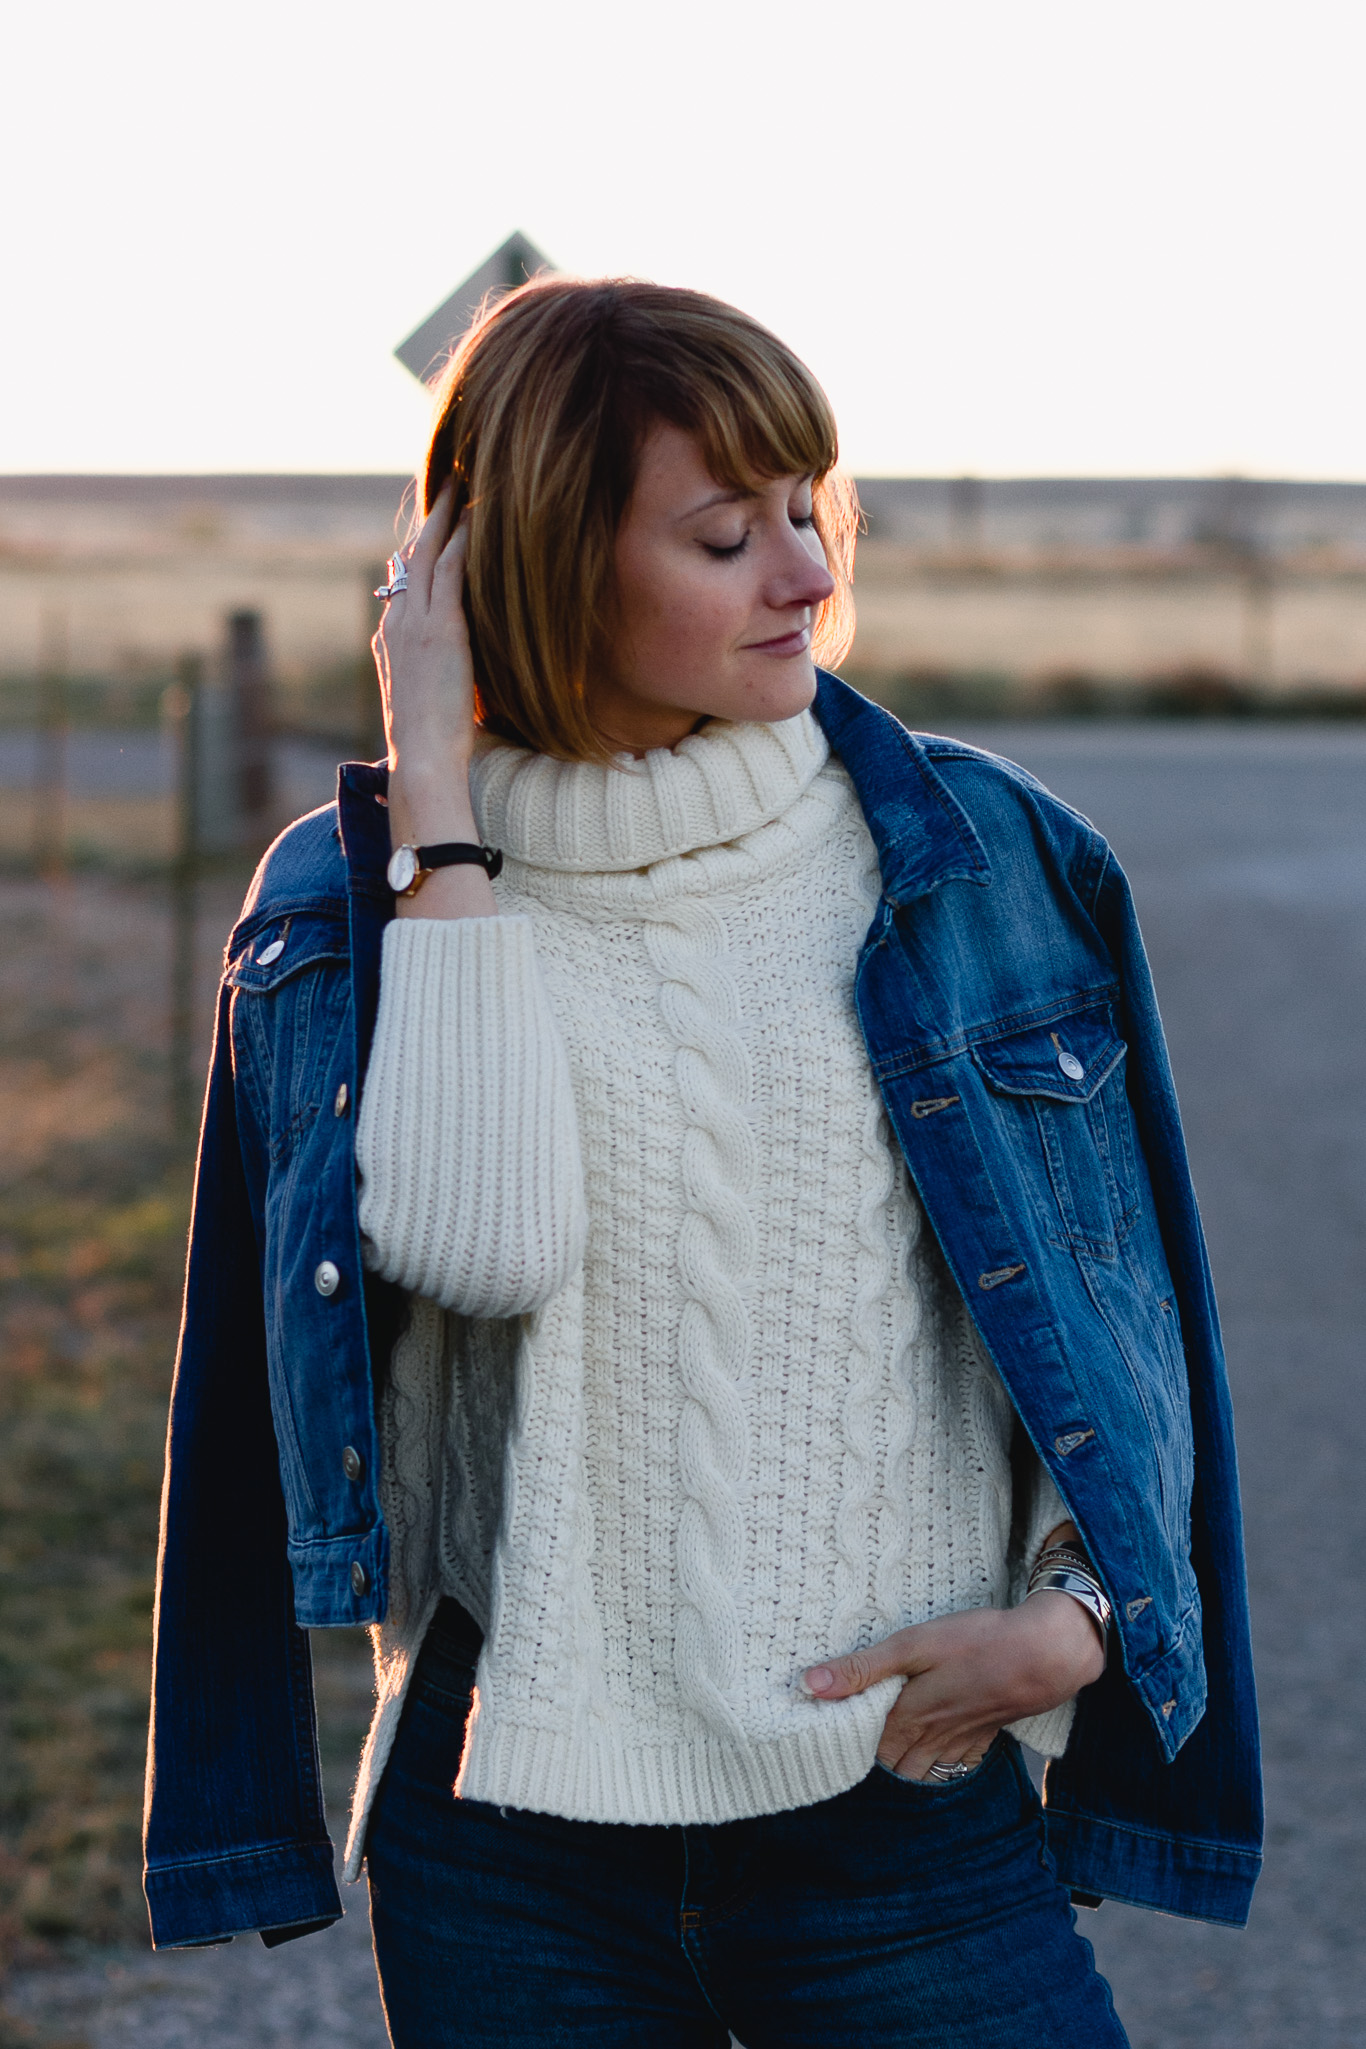 H&M denim jacket and cableknit sweater